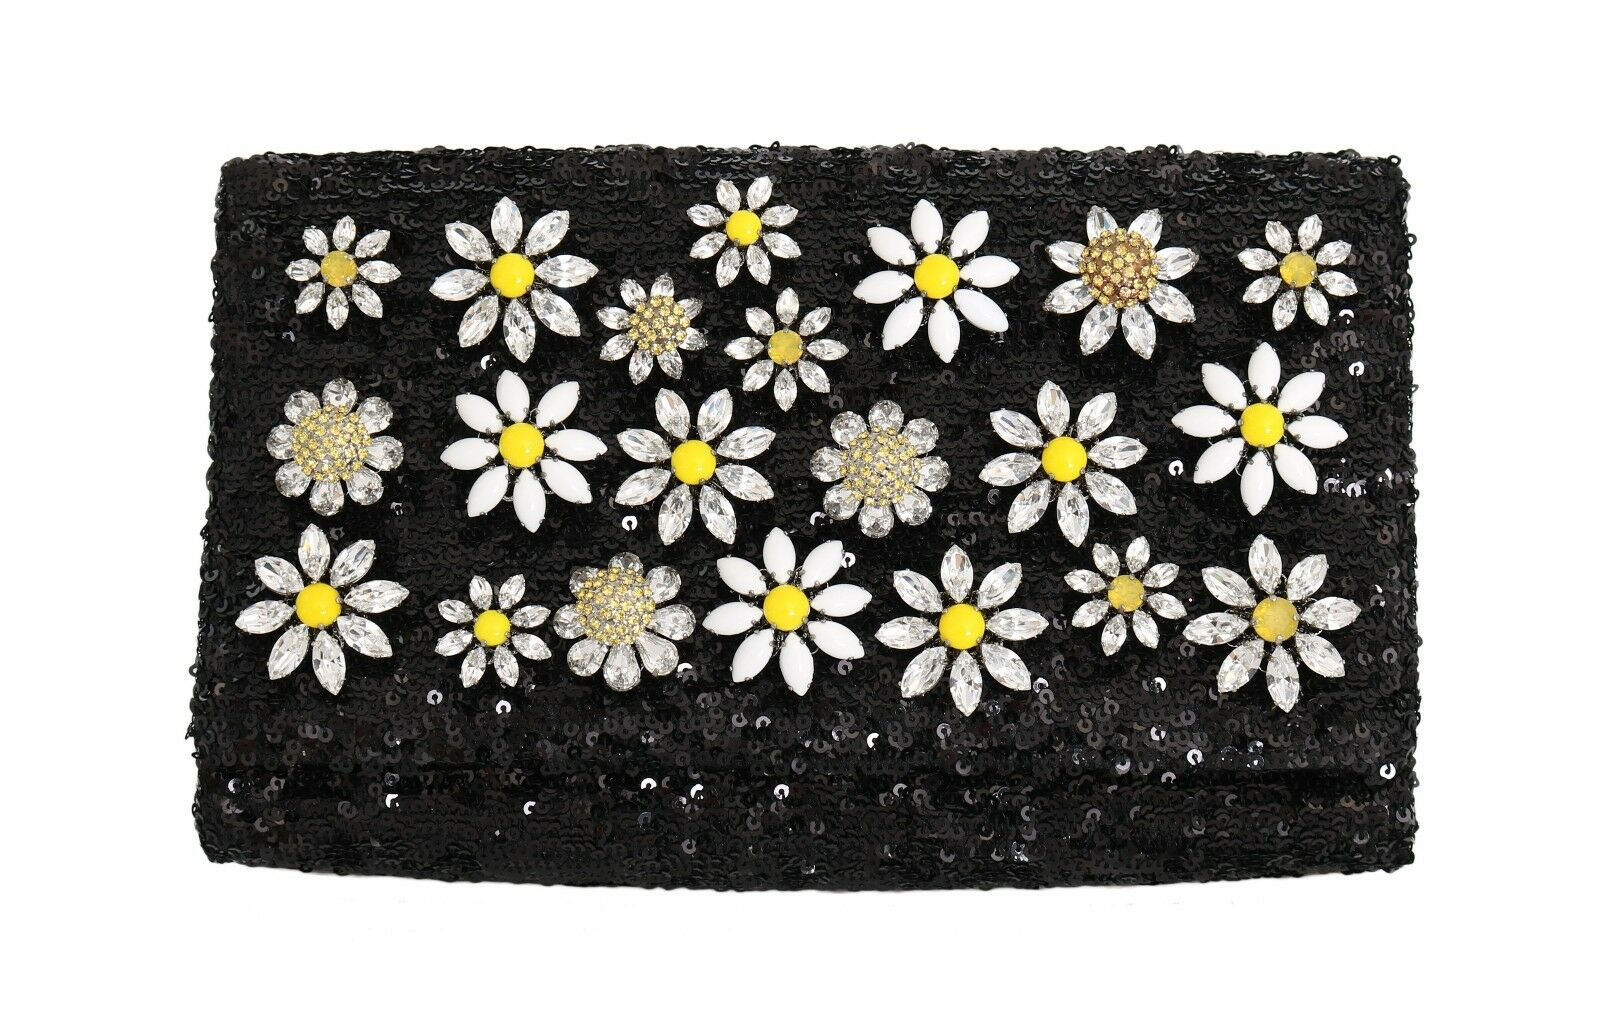 36a7191a1c9 NEW  3700 DOLCE   GABBANA Bag ANNA Purse Black Sequined Daisy Crystal  Clutch 1 of 12Only 2 available ...